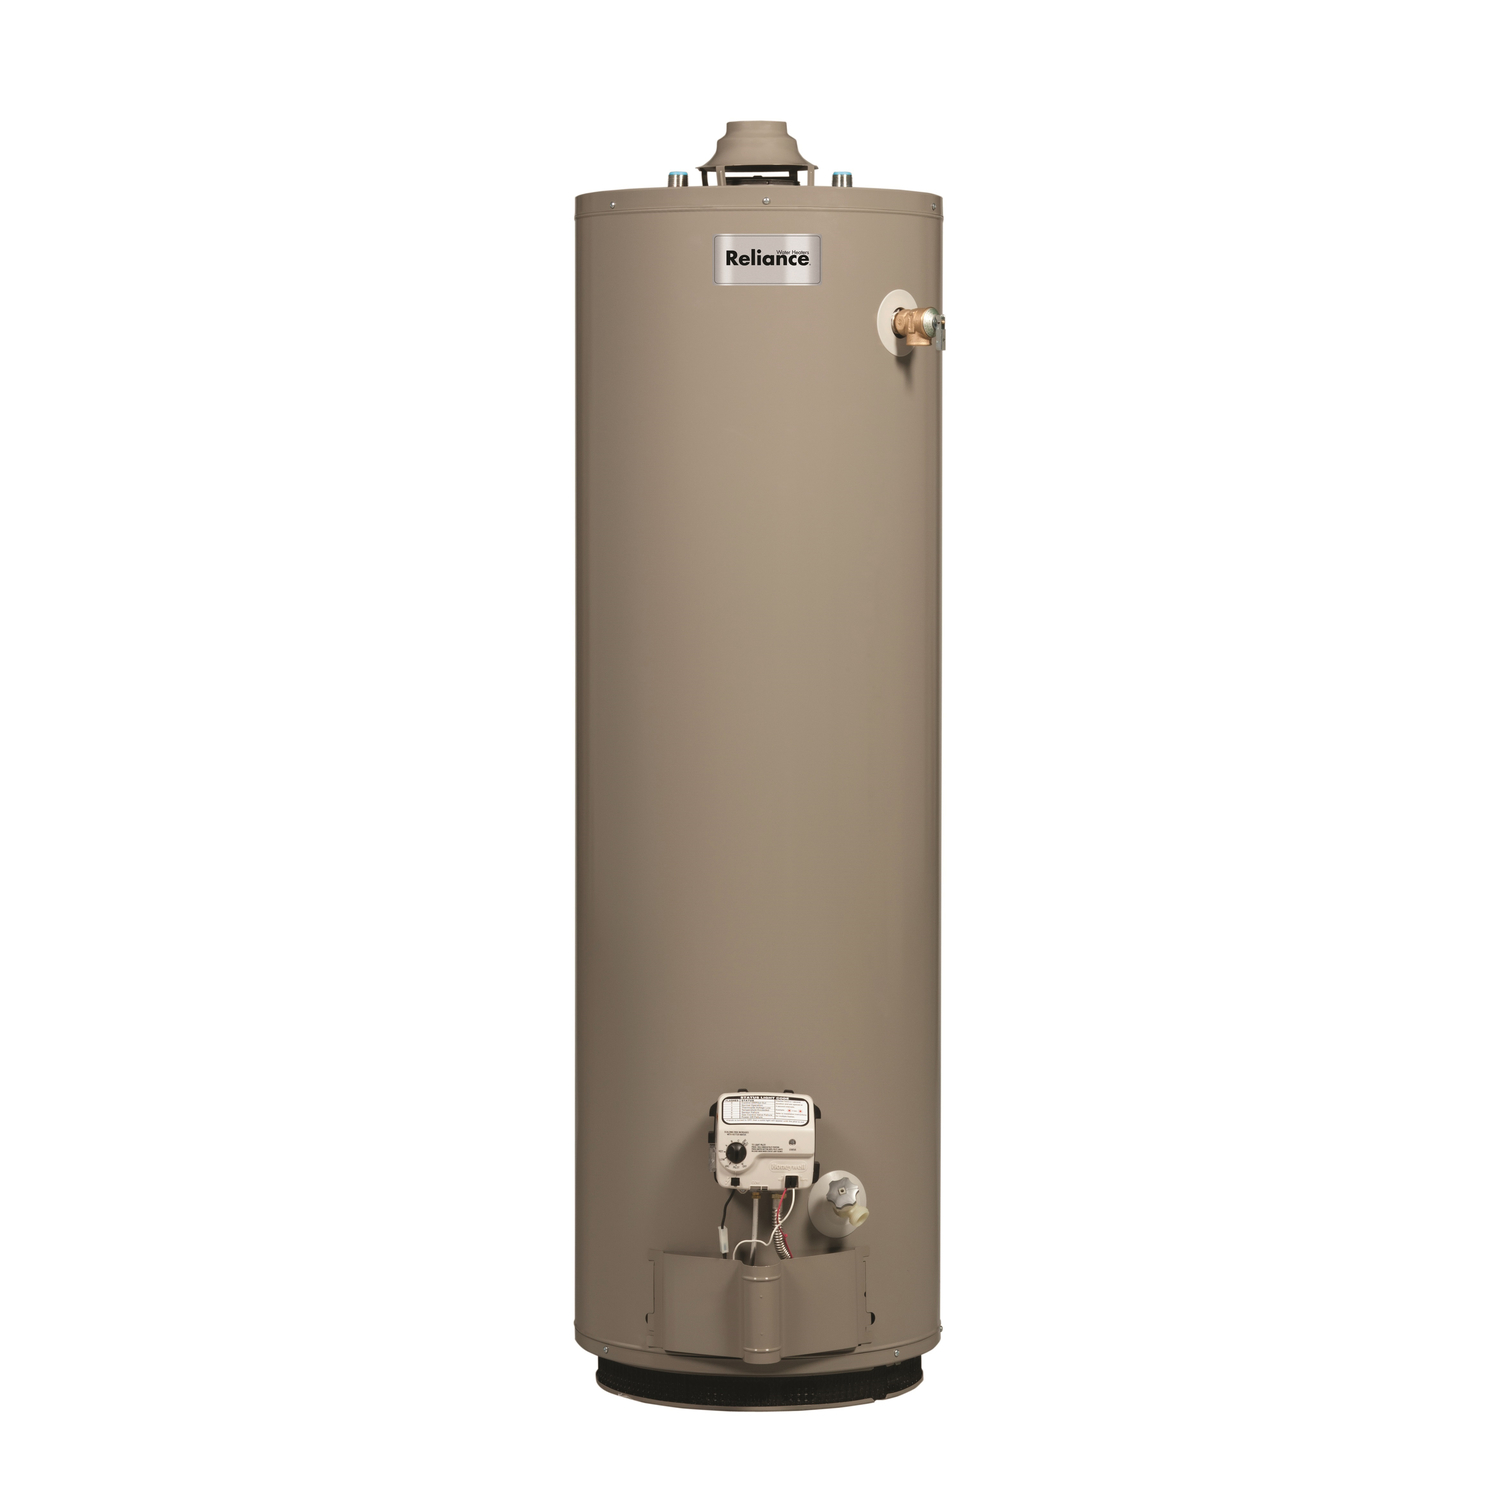 Reliance  Water Heater  Natural Gas  30 gal. 61-3/4 in. H x 16 in. L x 16 in. W